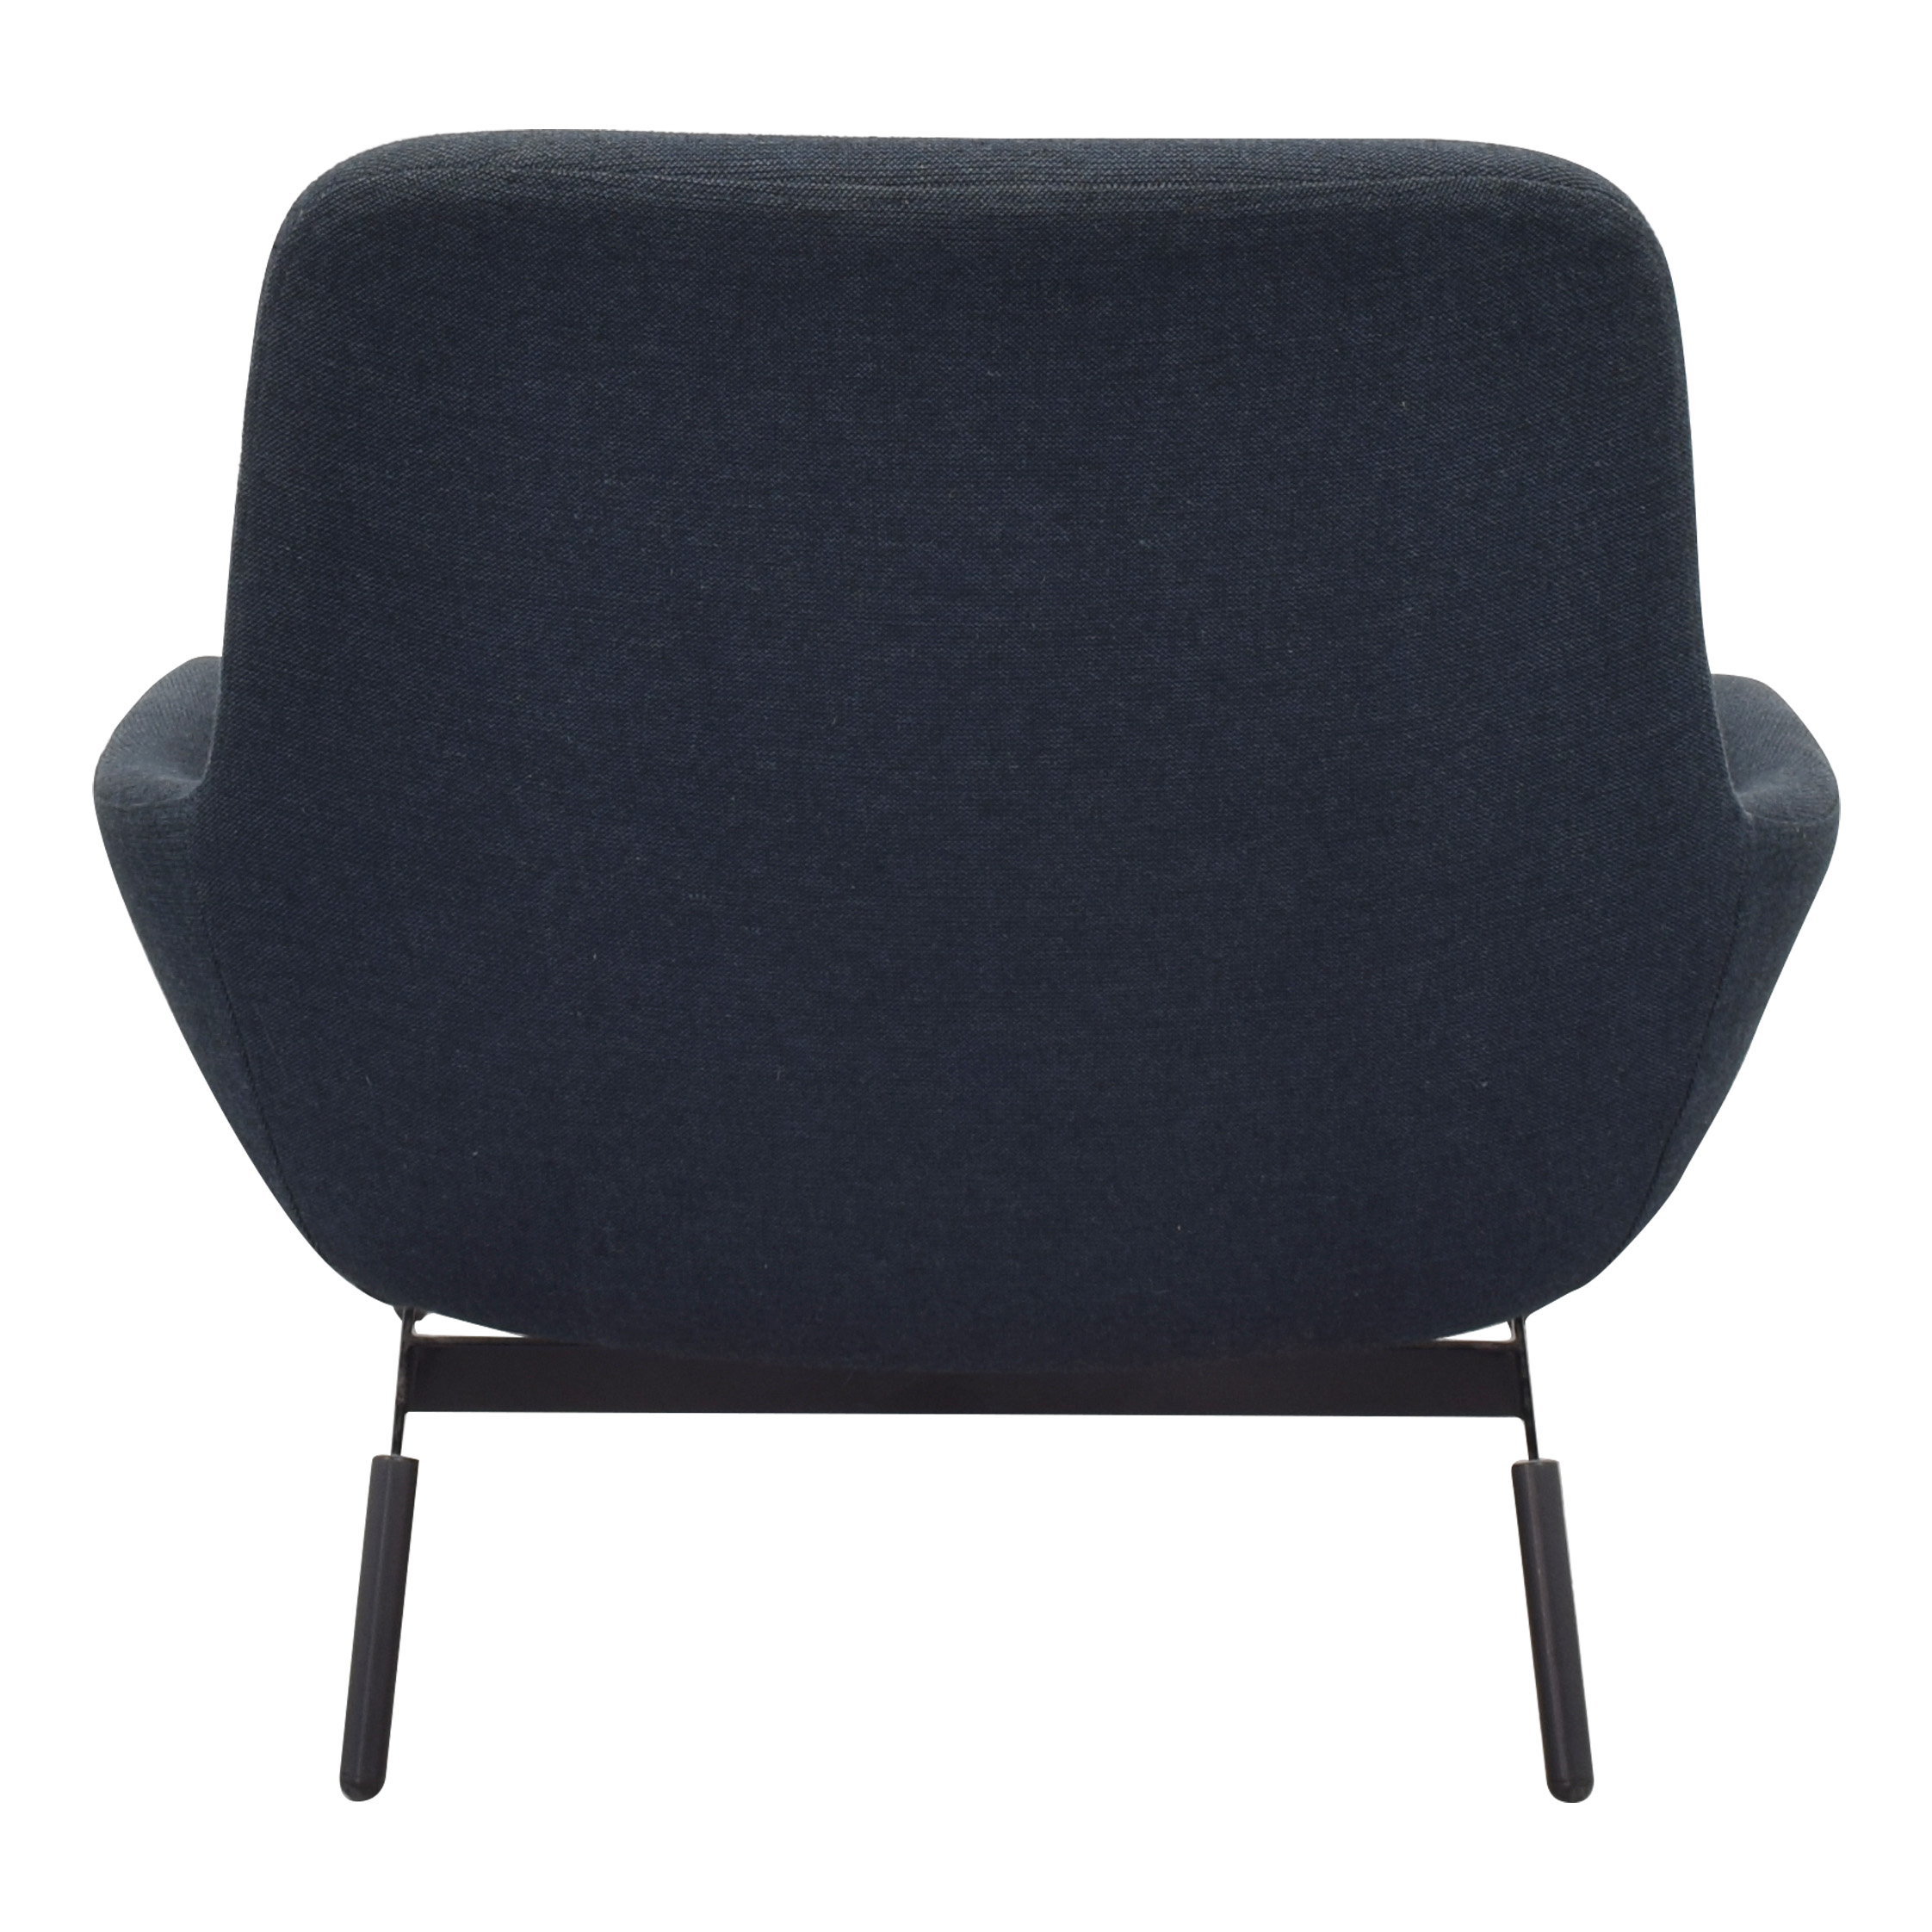 Blu Dot Blu Dot Field Lounge Chair on sale